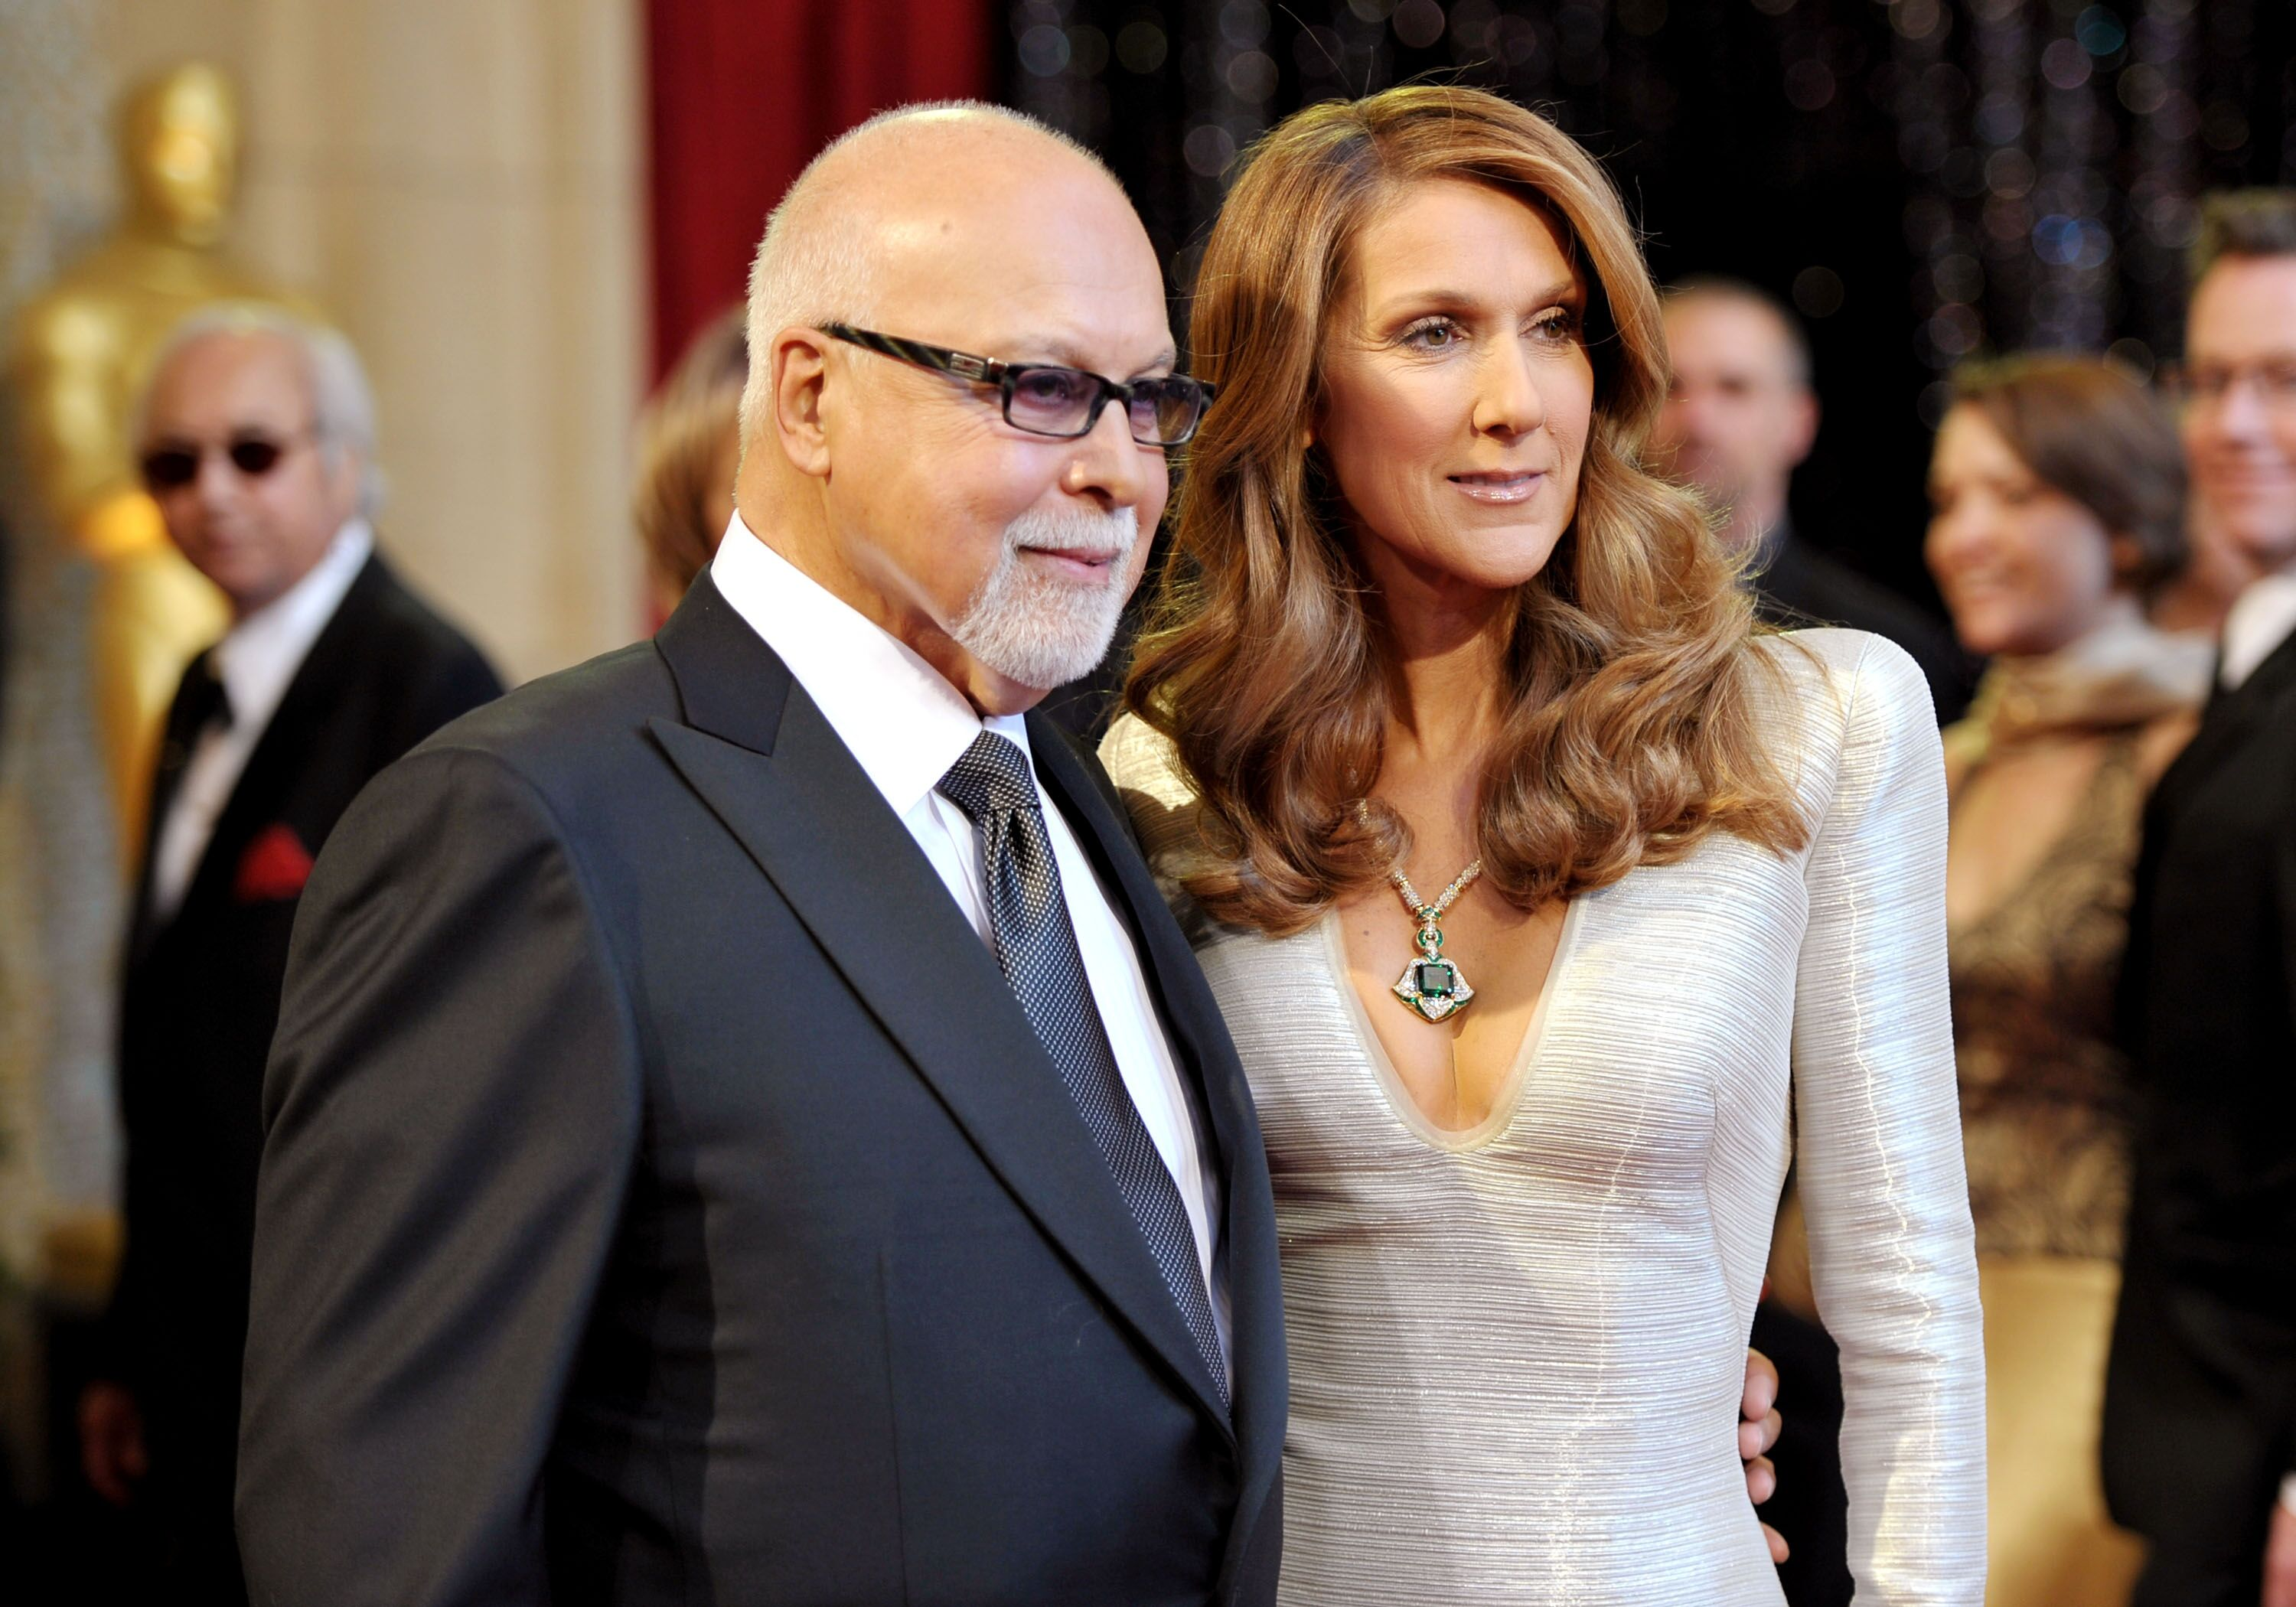 Rene Angelil and Celine Dion arrive at the 83rd Annual Academy Awards held at the Kodak Theatre on February 27, 2011 in Hollywood, California.   Source: Getty Images